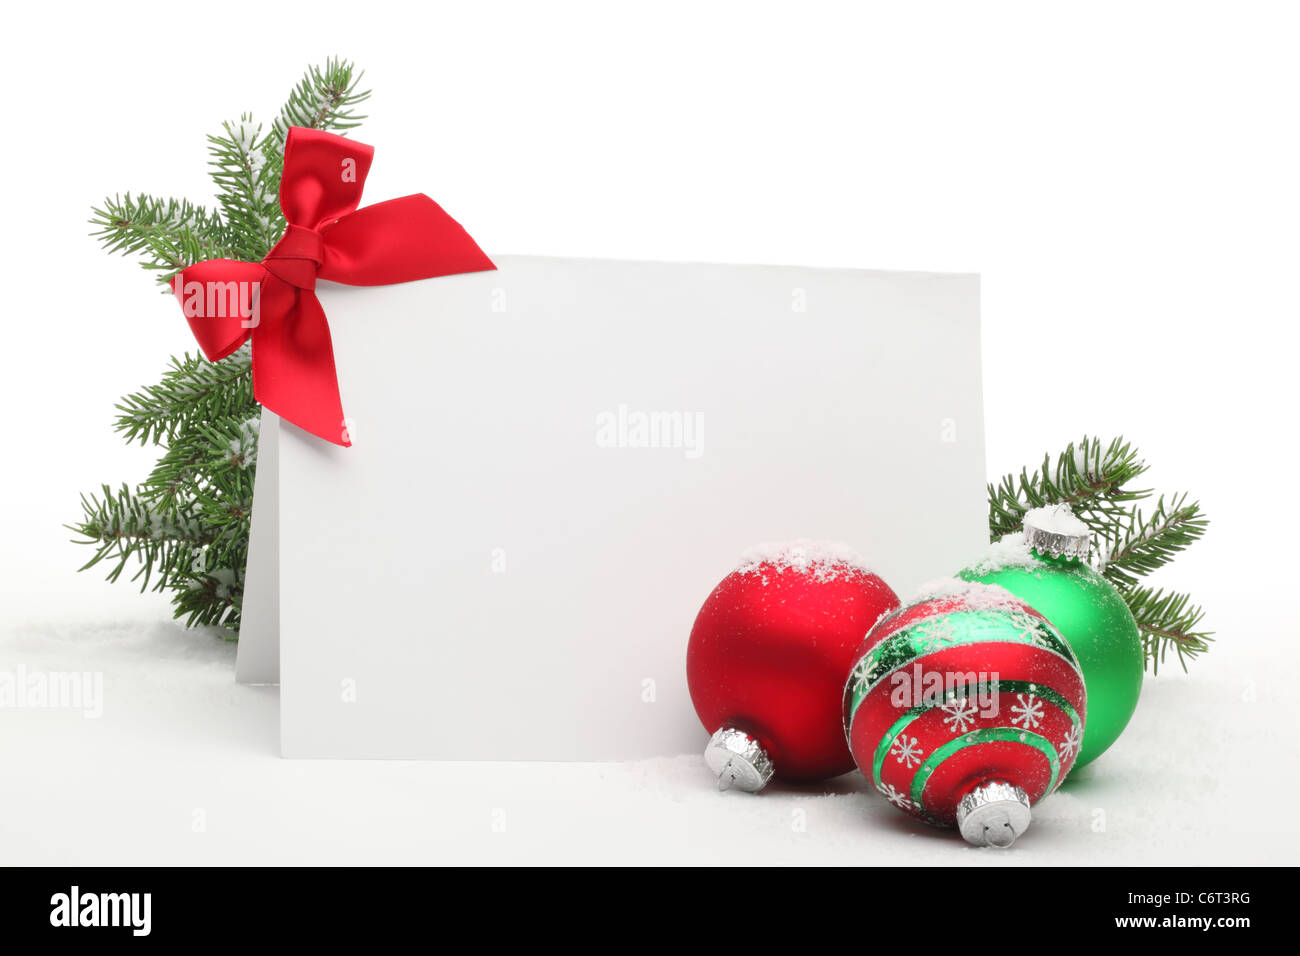 Christmas Ornaments with blank card on white background Stock Photo ...